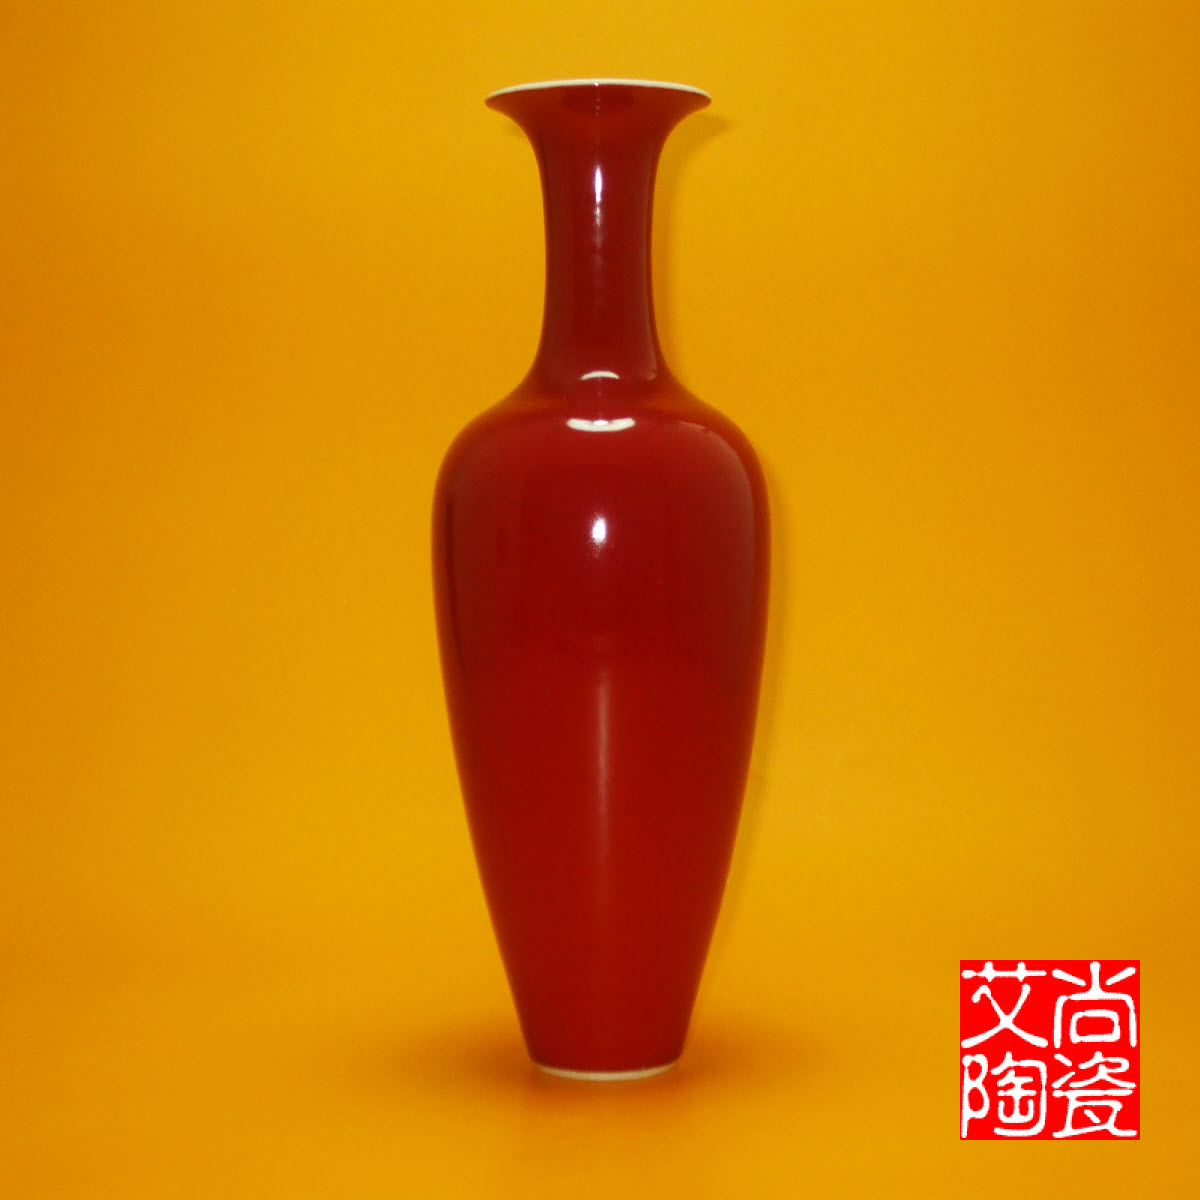 Decorative Decoration of Red Willow Leaf Bottle by Color Glaze Monochromatic Glaze for Jingdezhen Antique Porcelain Vase and Red Glaze Porcelain Bottle